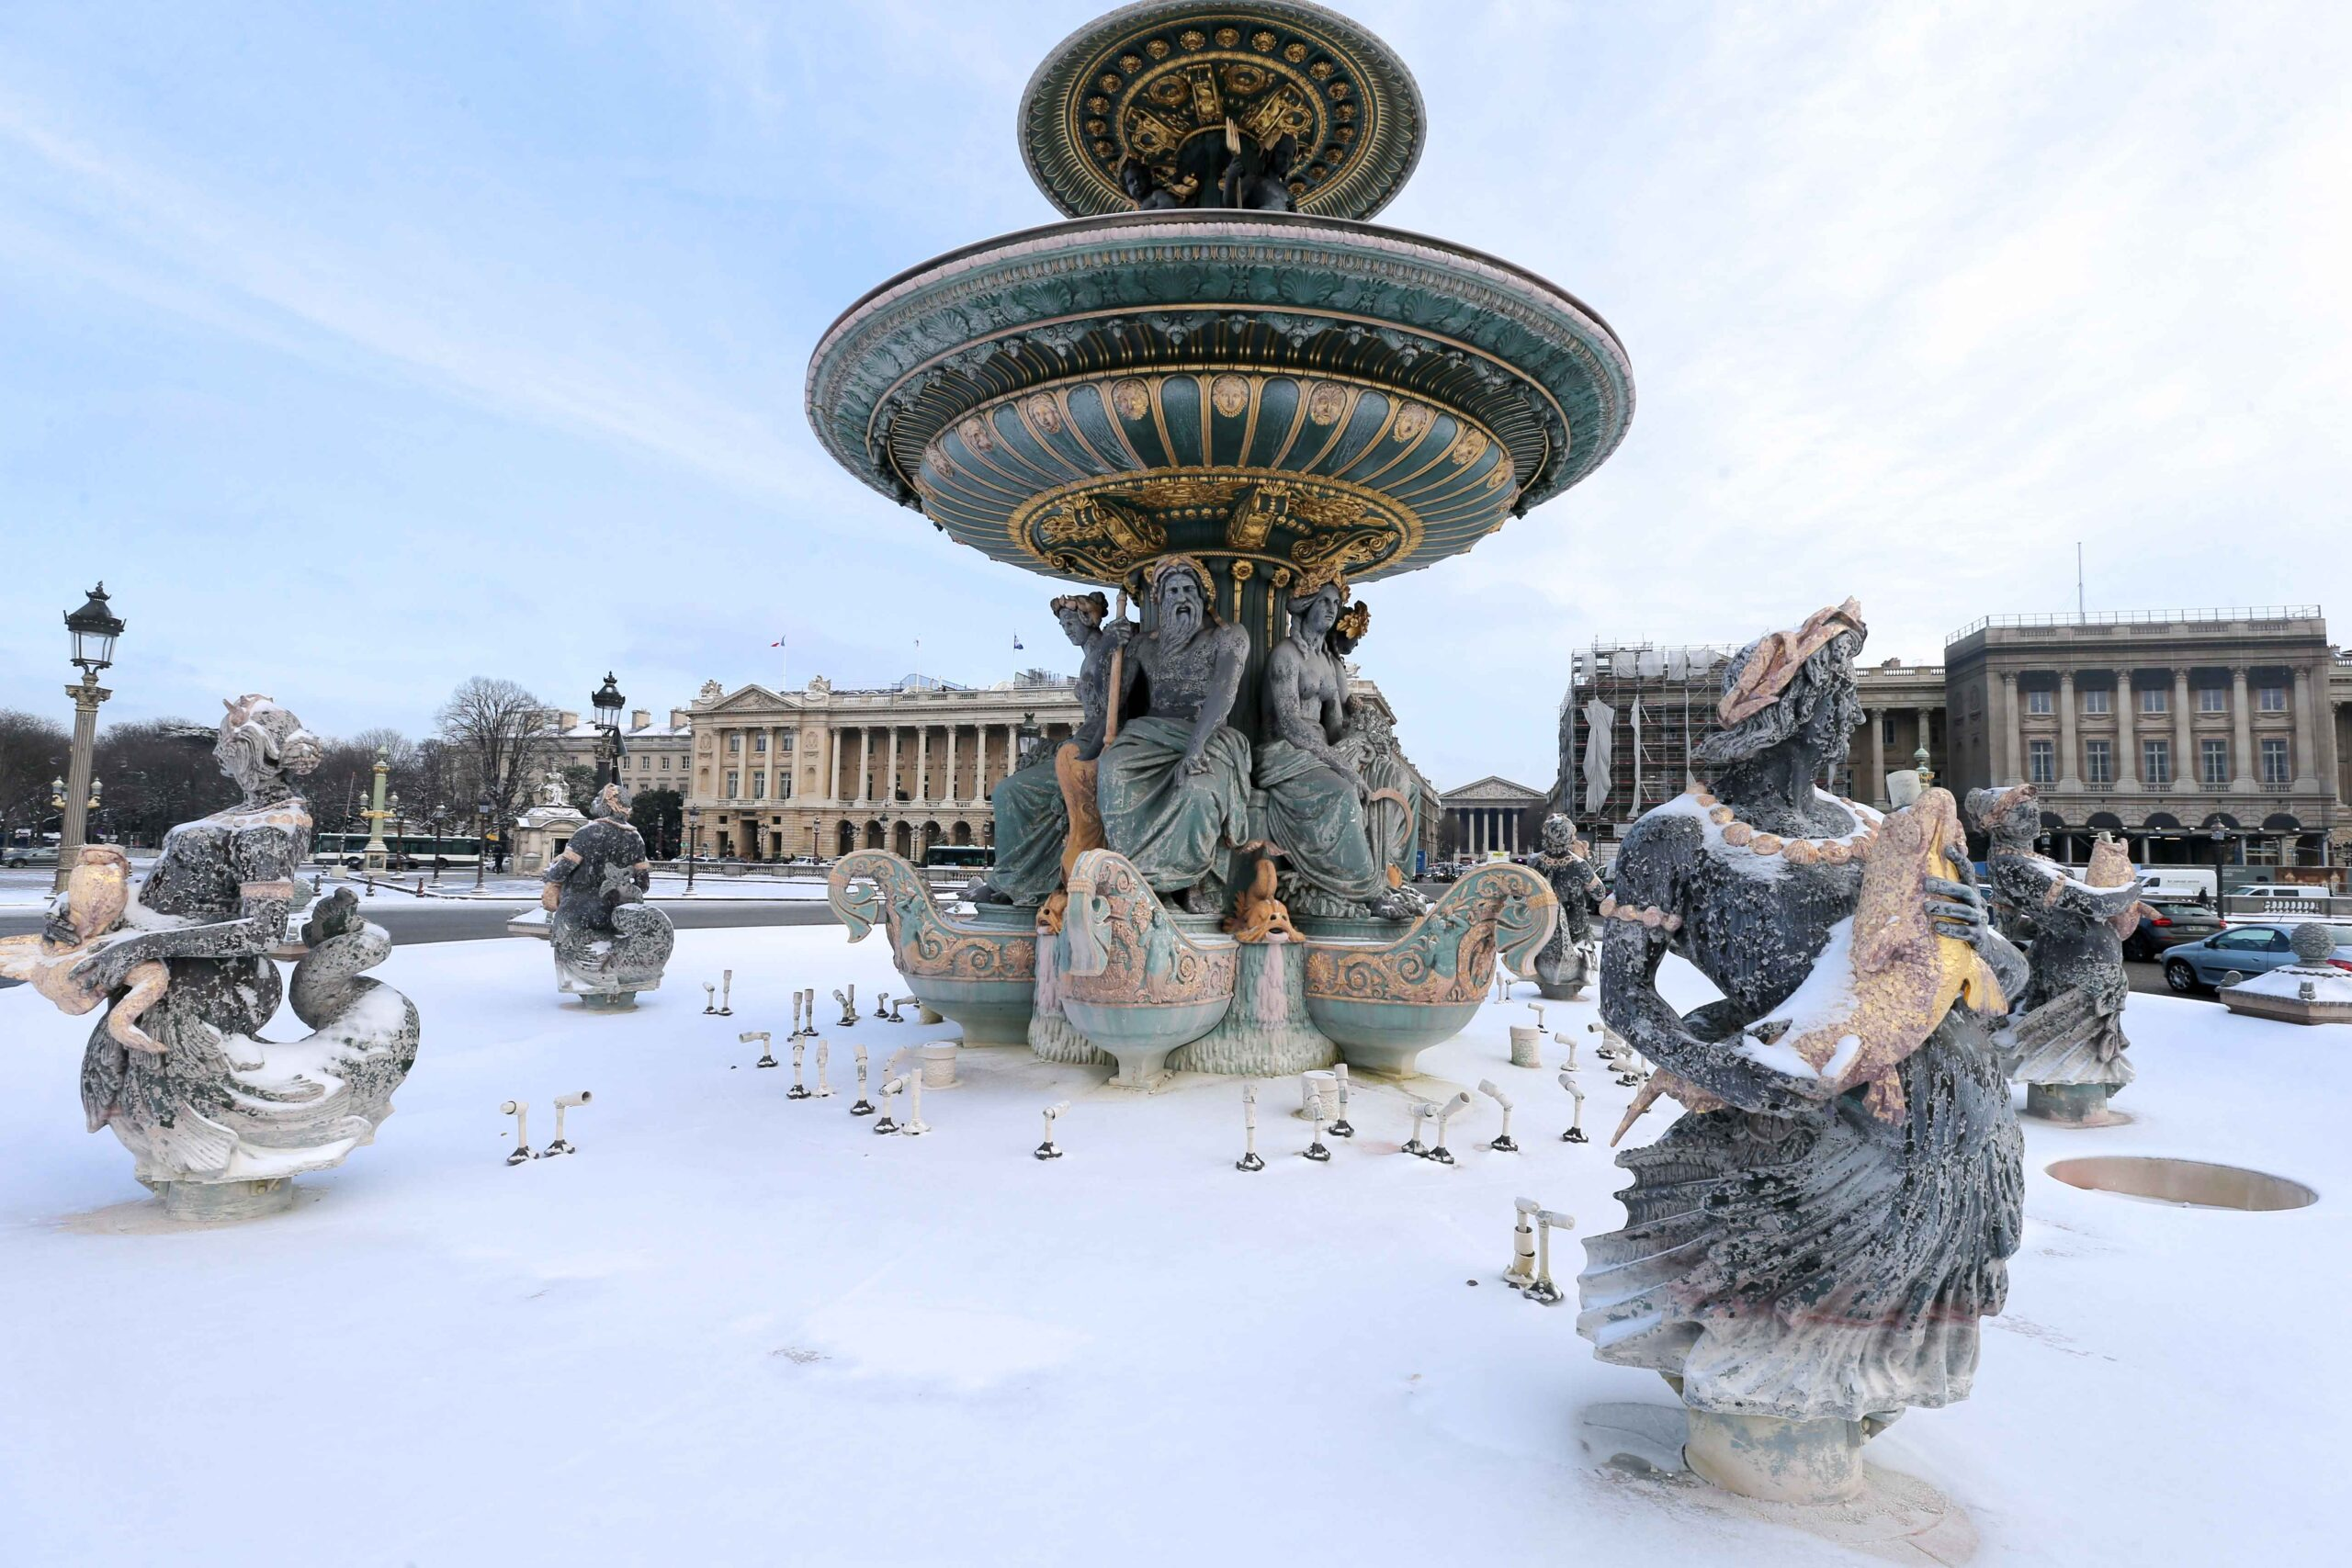 Basins and jets of water of the Place de la Concorde, in Paris, are covered in snow on February 10, 2021, following an overnight snowfall. In parts of the Paris region authorities cancelled school buses and urged parents to keep children at home. The city